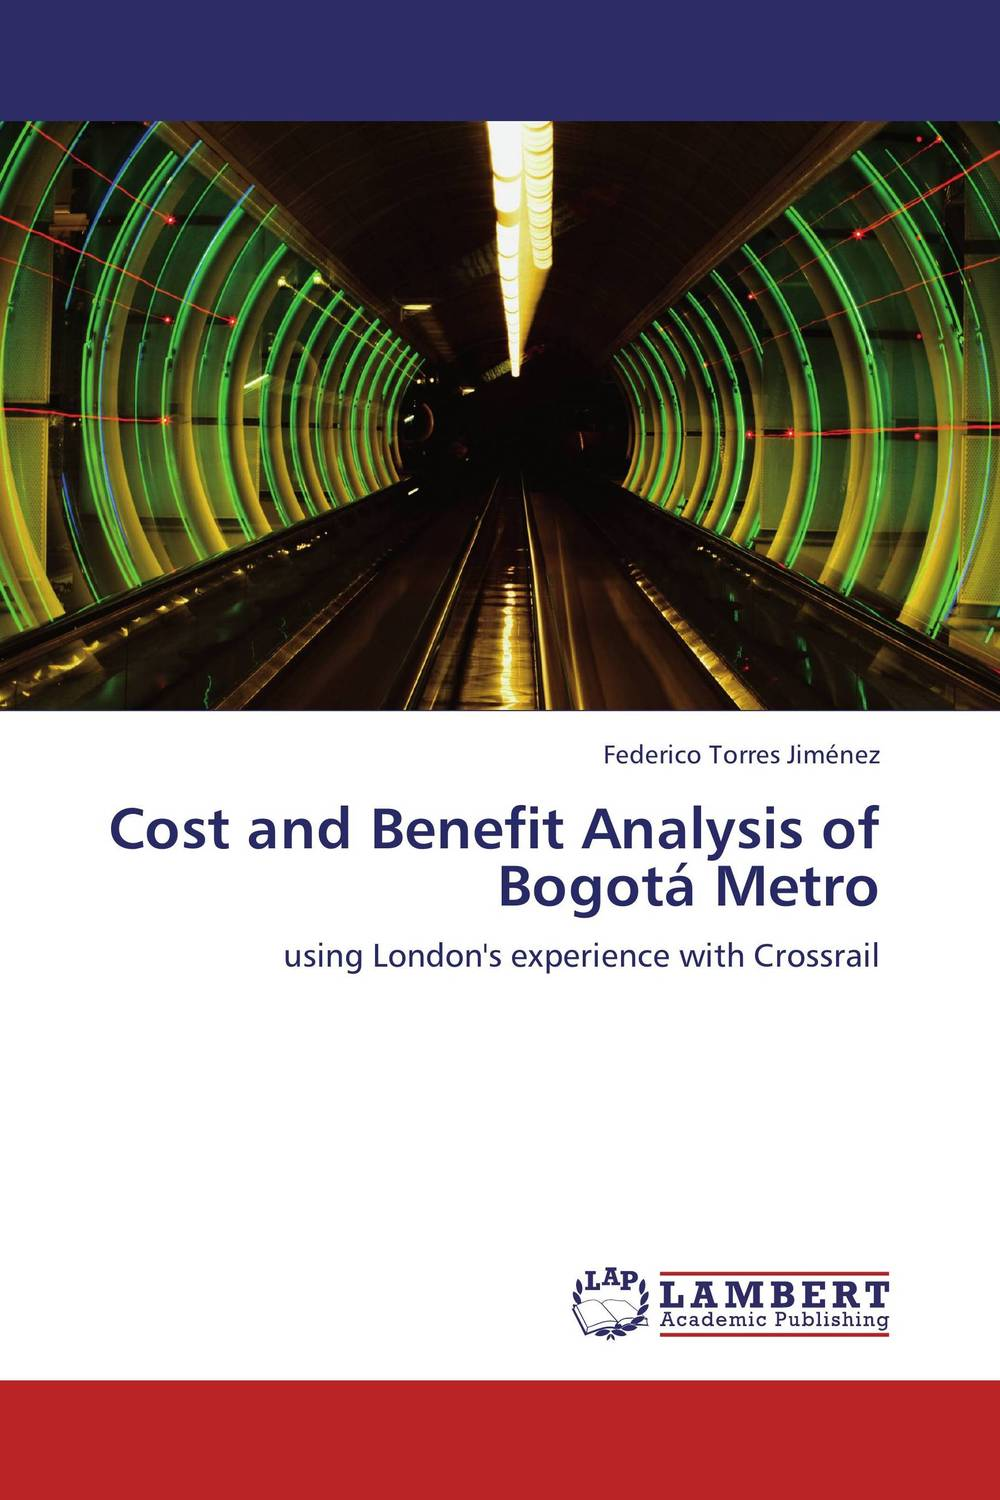 Cost and Benefit Analysis of Bogota Metro pharmaceutical innovation incentives competition and cost benefit analysis in international perspective